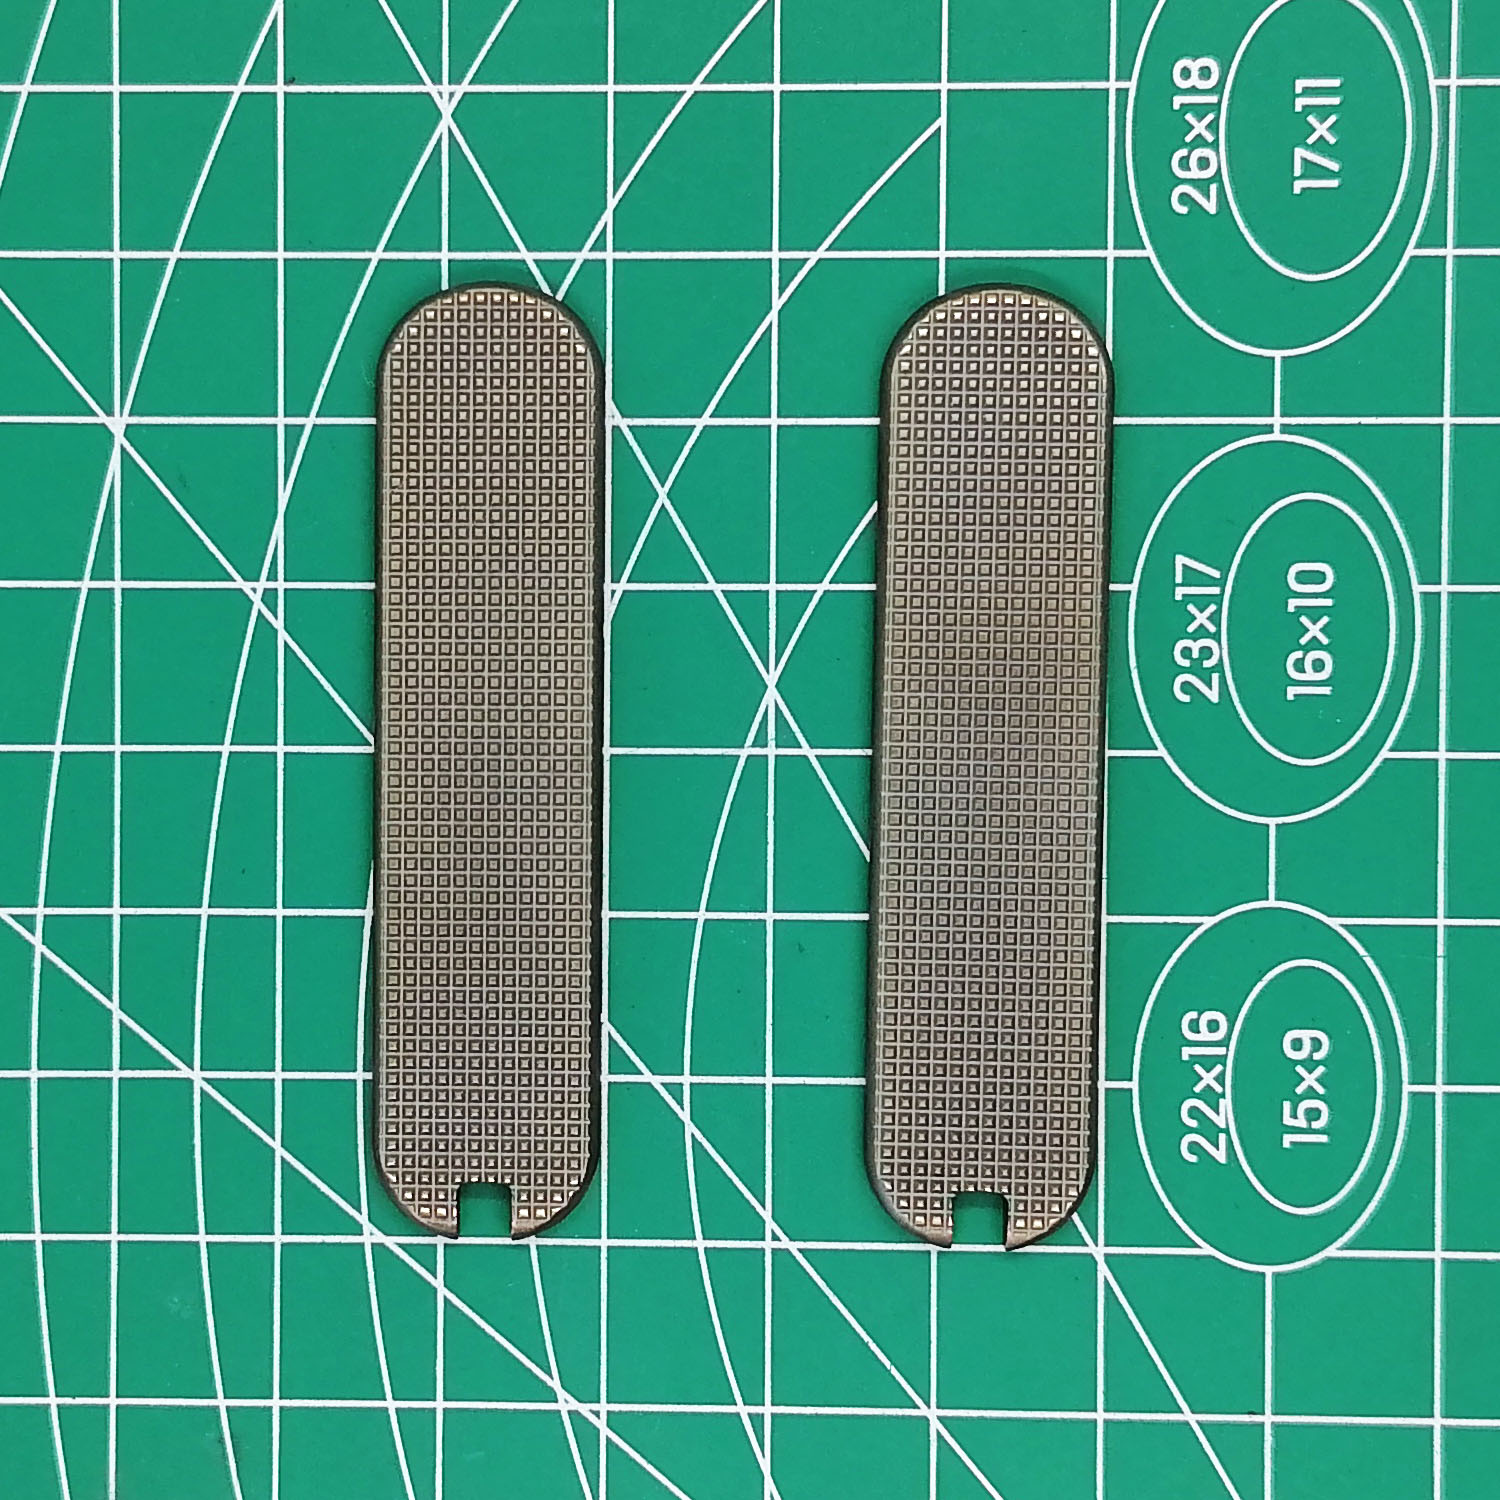 Custom Victorinox Swiss Army Brass Handle Scales With Tweezer Cut-Out For 65mm